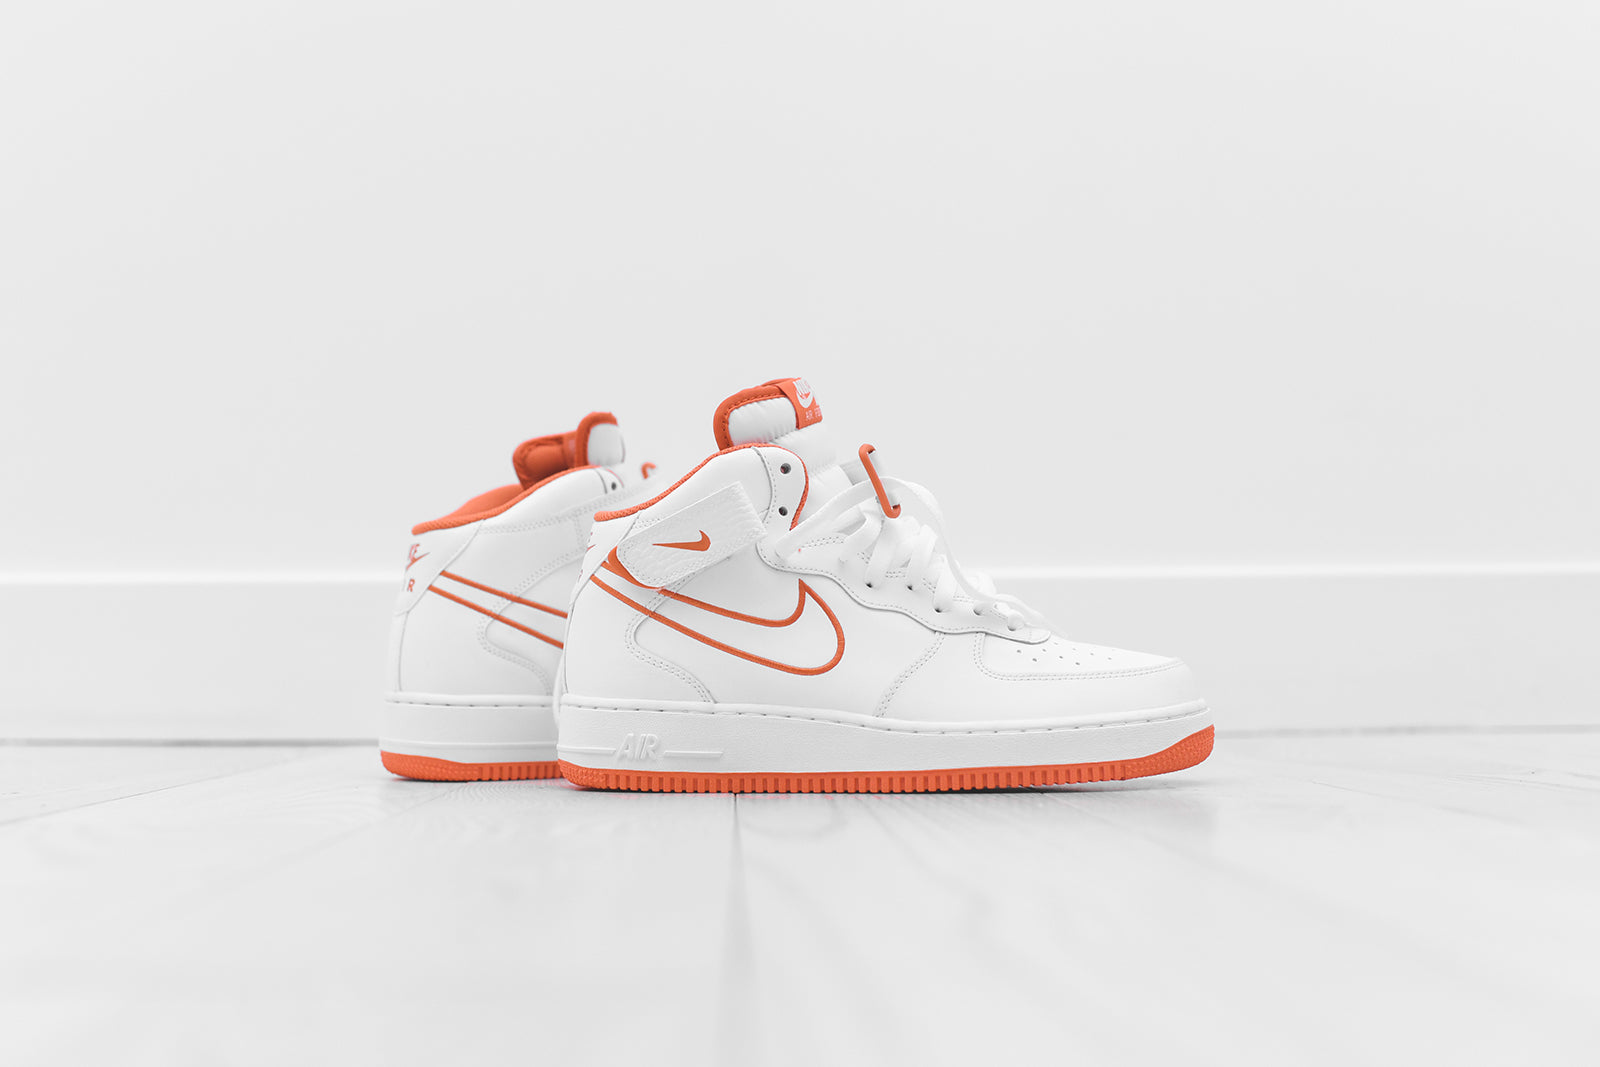 Nike Air Force 1 AF1 Rice white rose gold 314219 021 Womens Running Shoes 314219 021